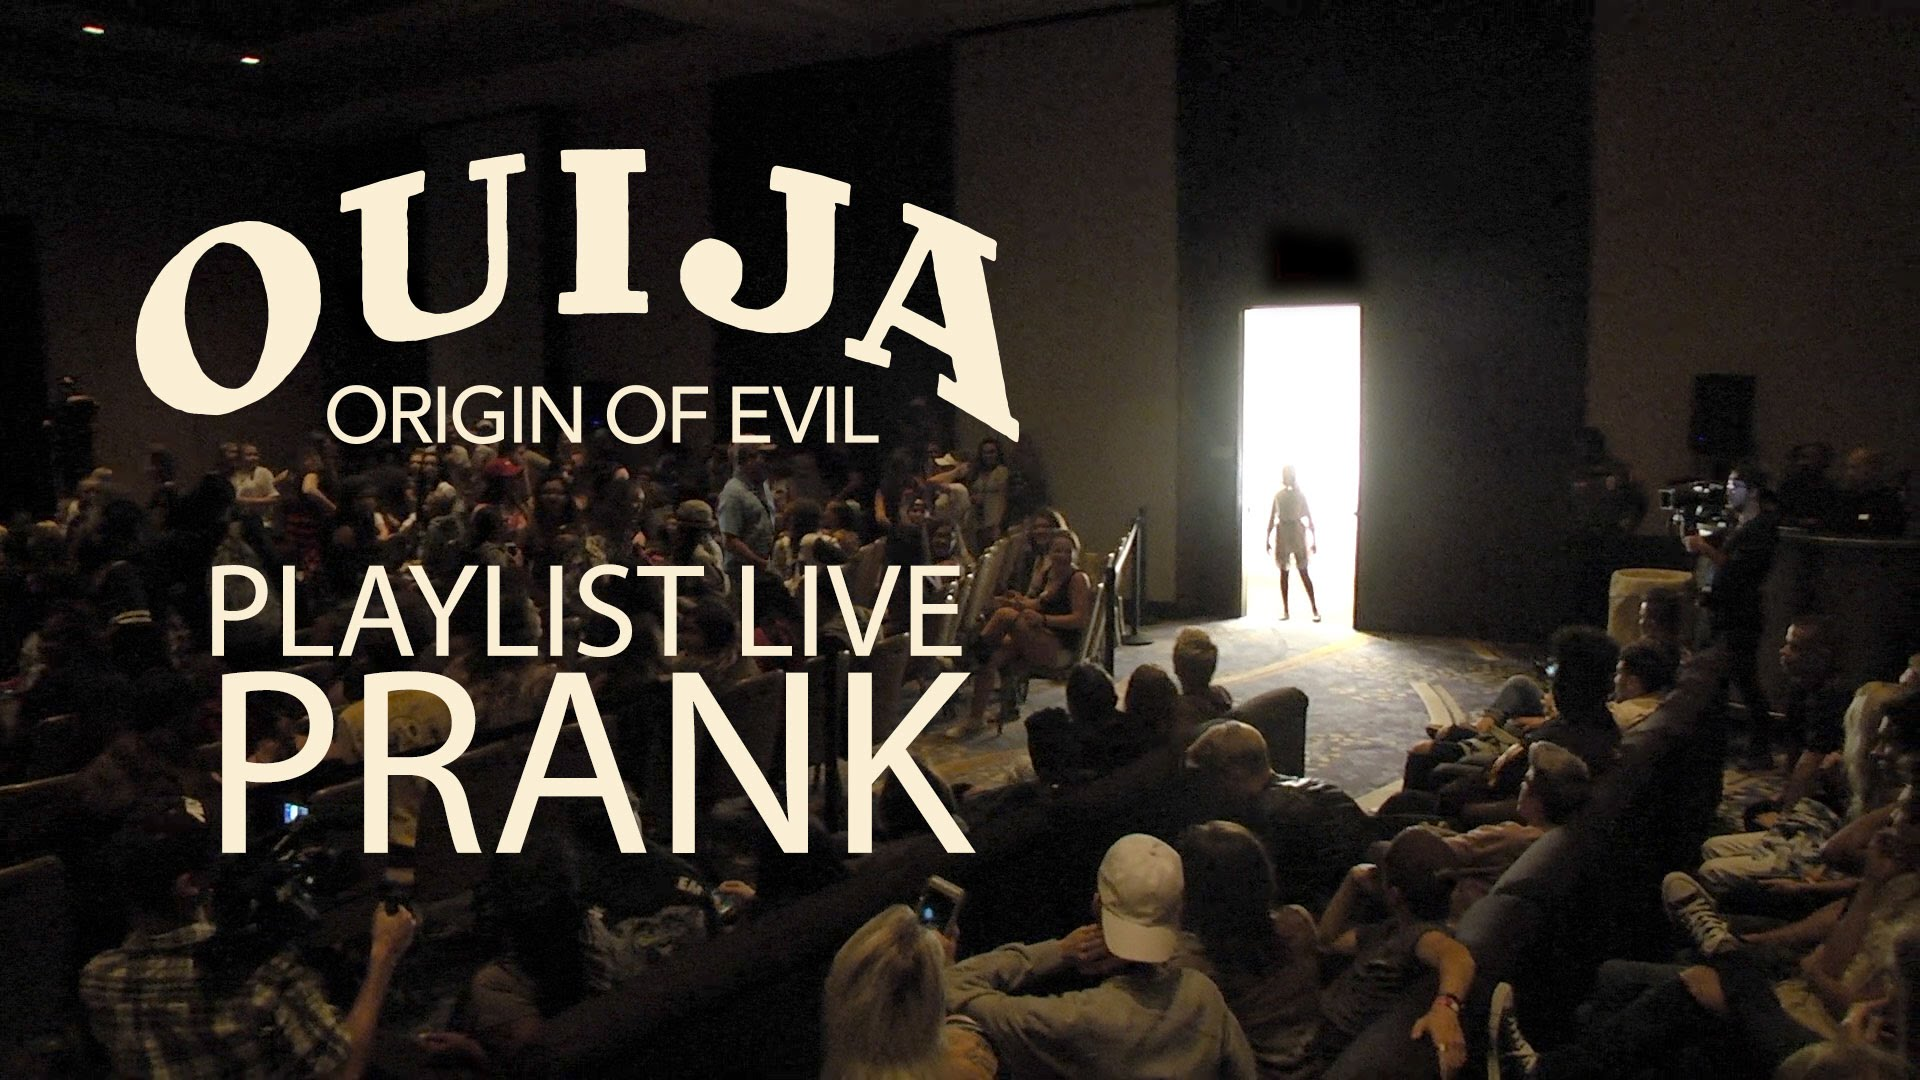 Ouija: Origin of Evil – Playlist Live Prank (HD)